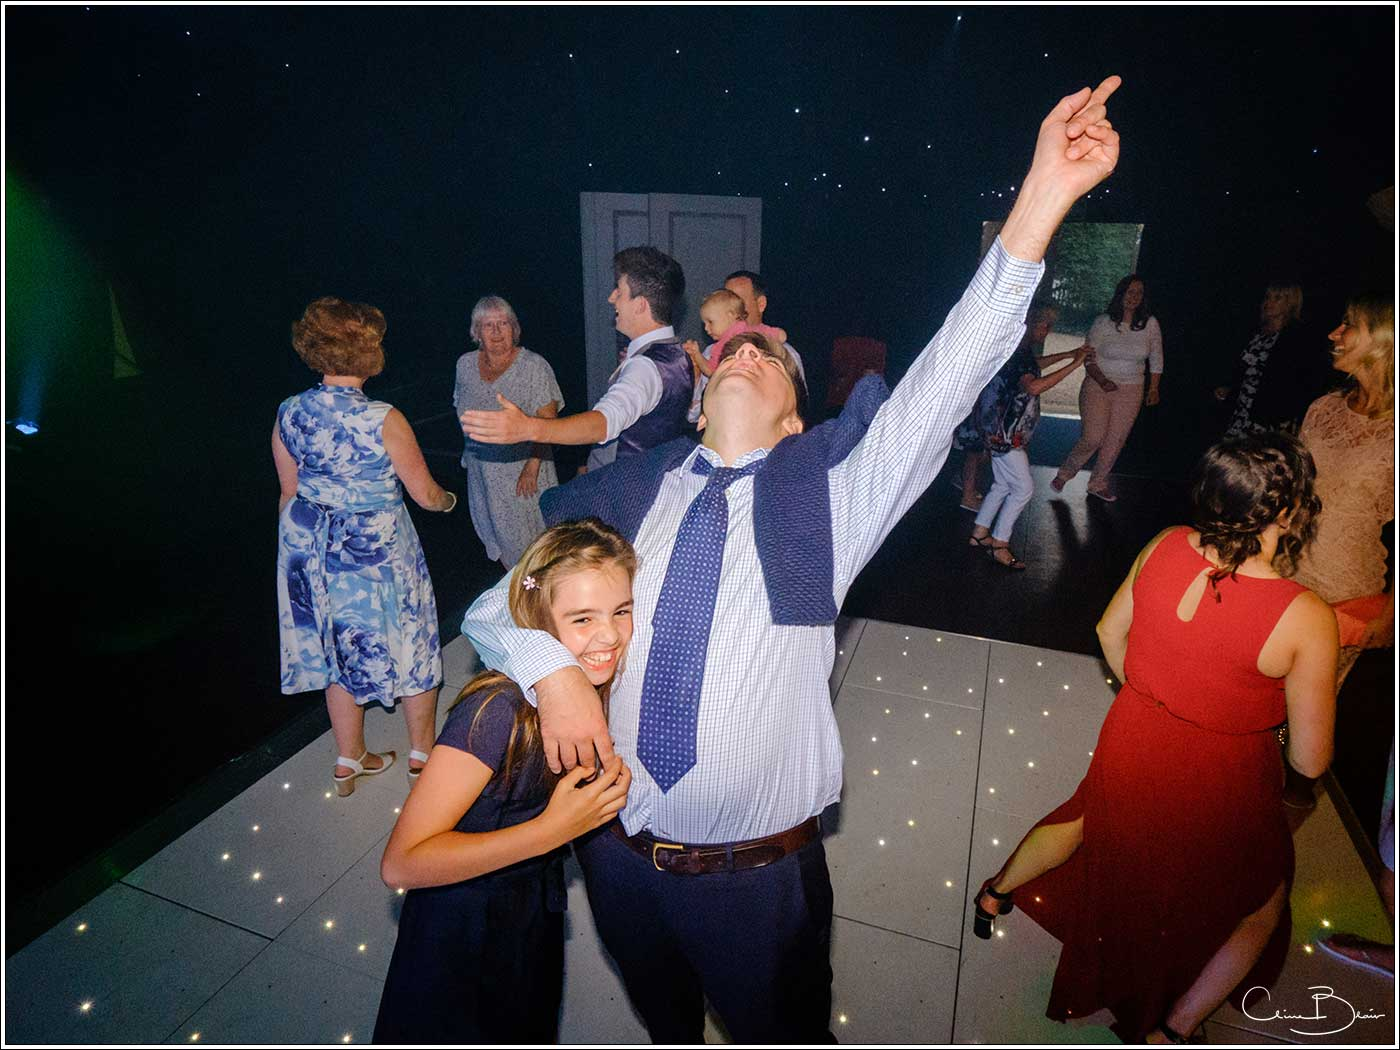 Coombe Abbey wedding photography showing man hugging a child on the dance floor